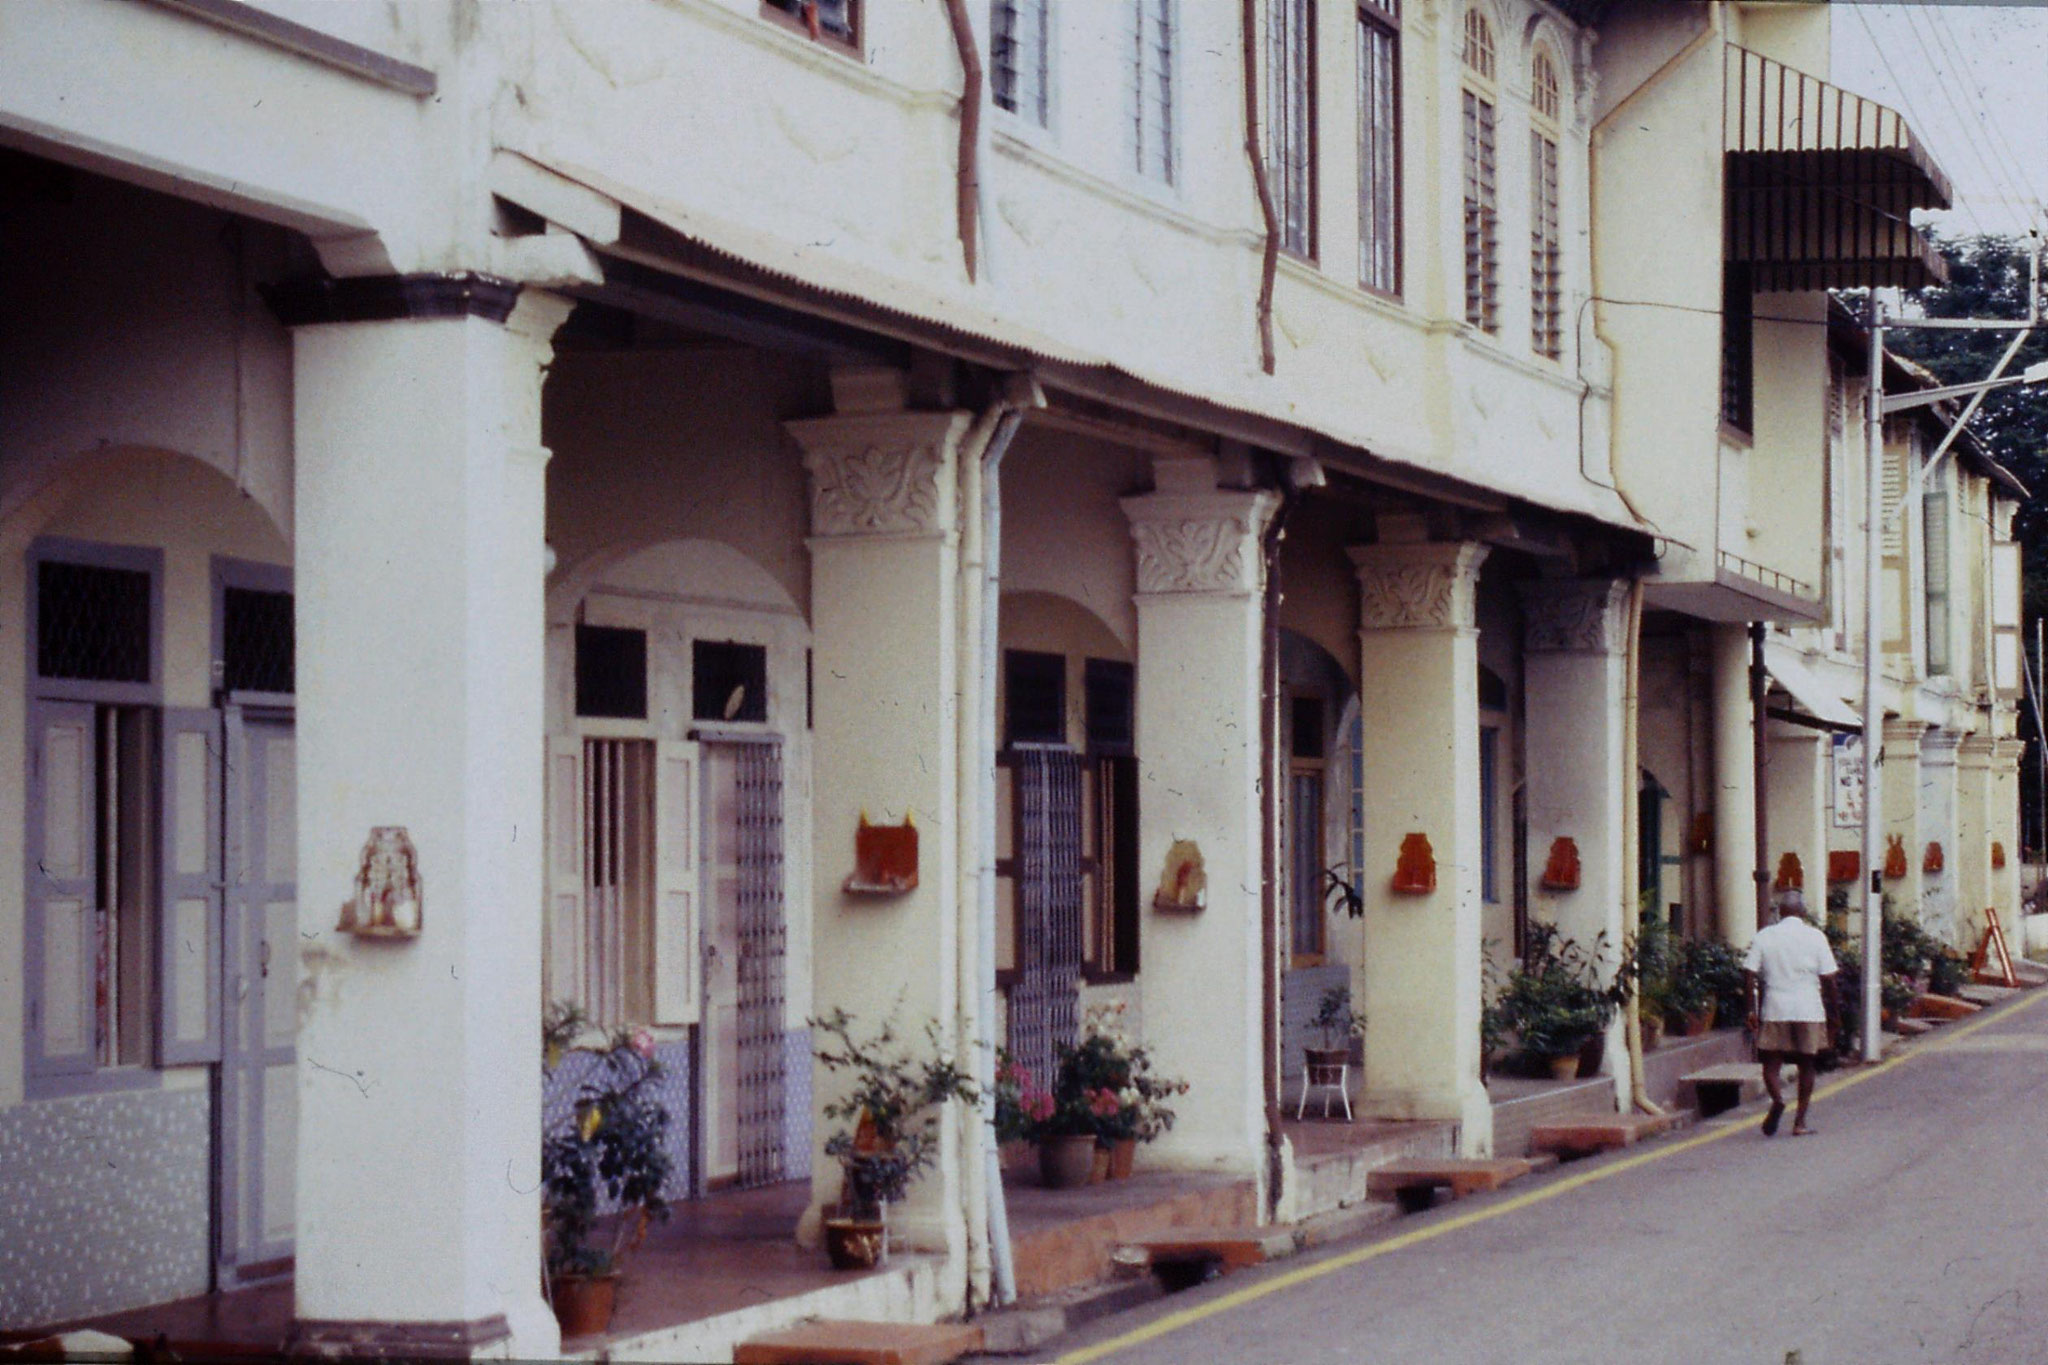 6/7/1990: Malacca houses with shrines